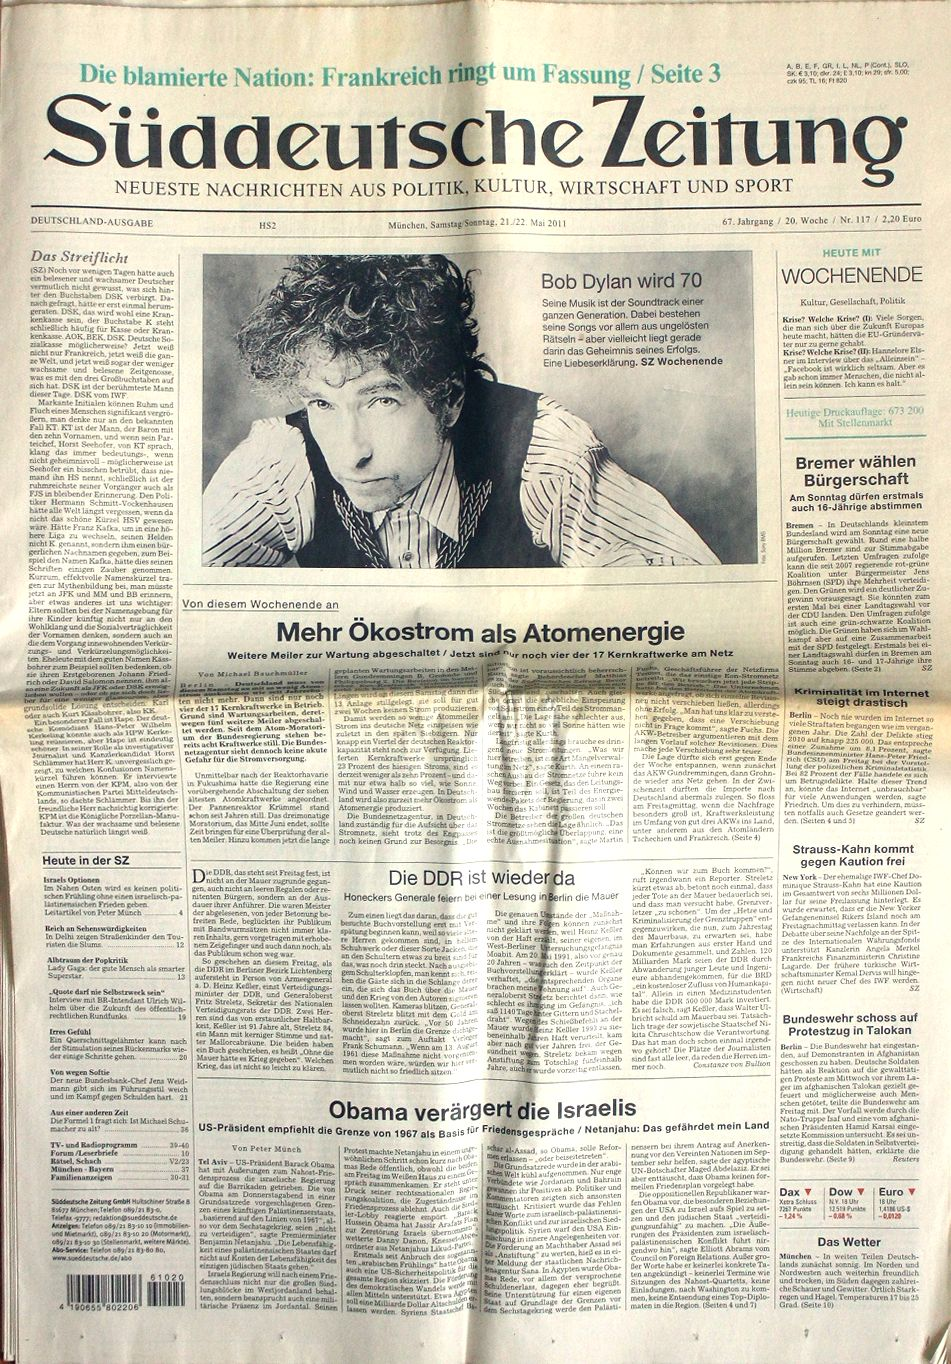 suddeutsche zeitung 21 May 2011 Bob Dylan cover story